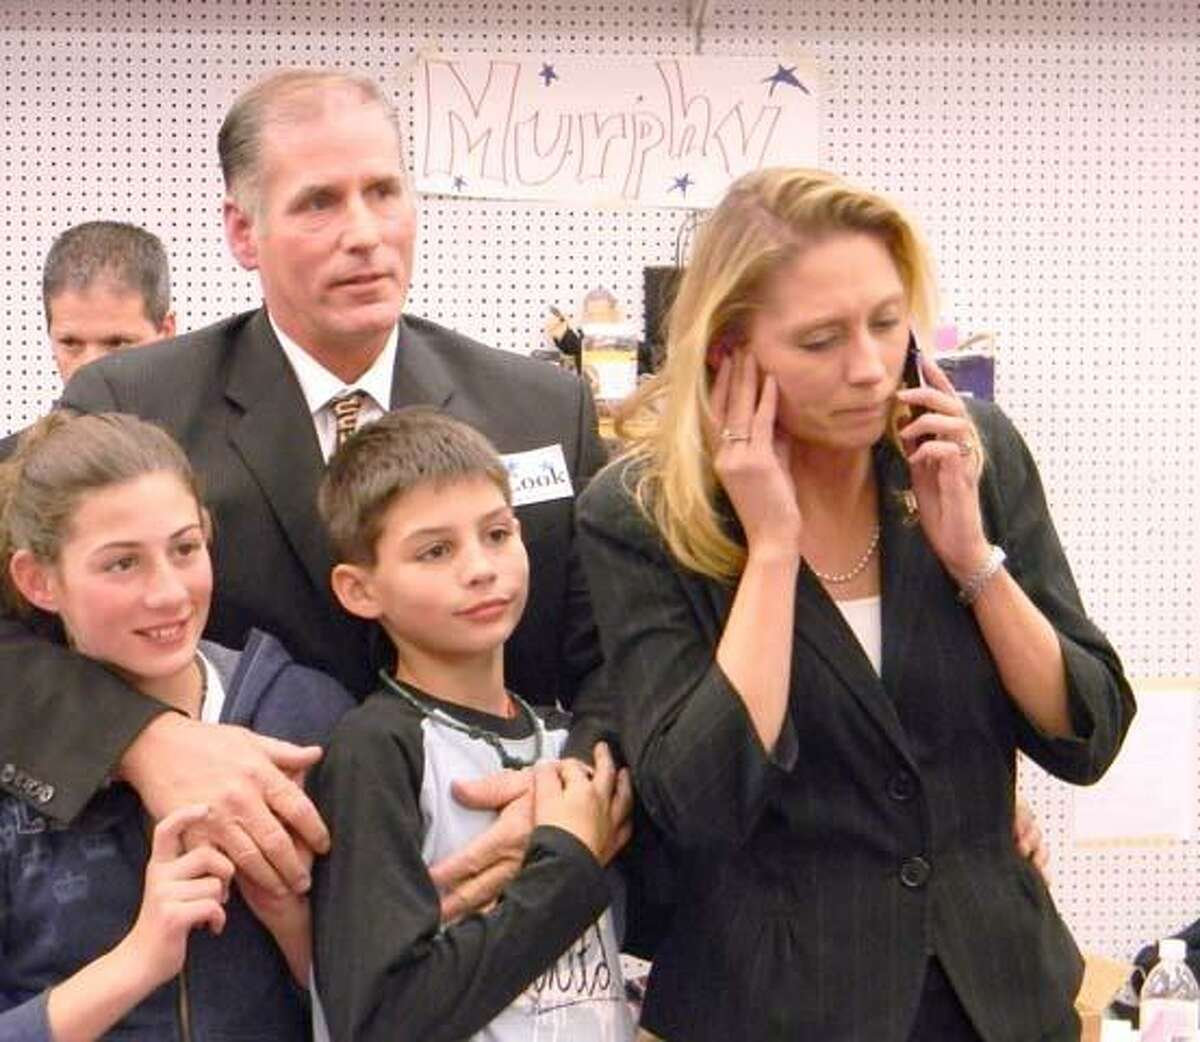 MIKE AGOGLIATI/ Register CitizenState Rep. Michelle Cook, D-65 takes a phone call after learning of her re-election. Cook's husband Chris, and children, Ashlynn and Billy stand by her side.